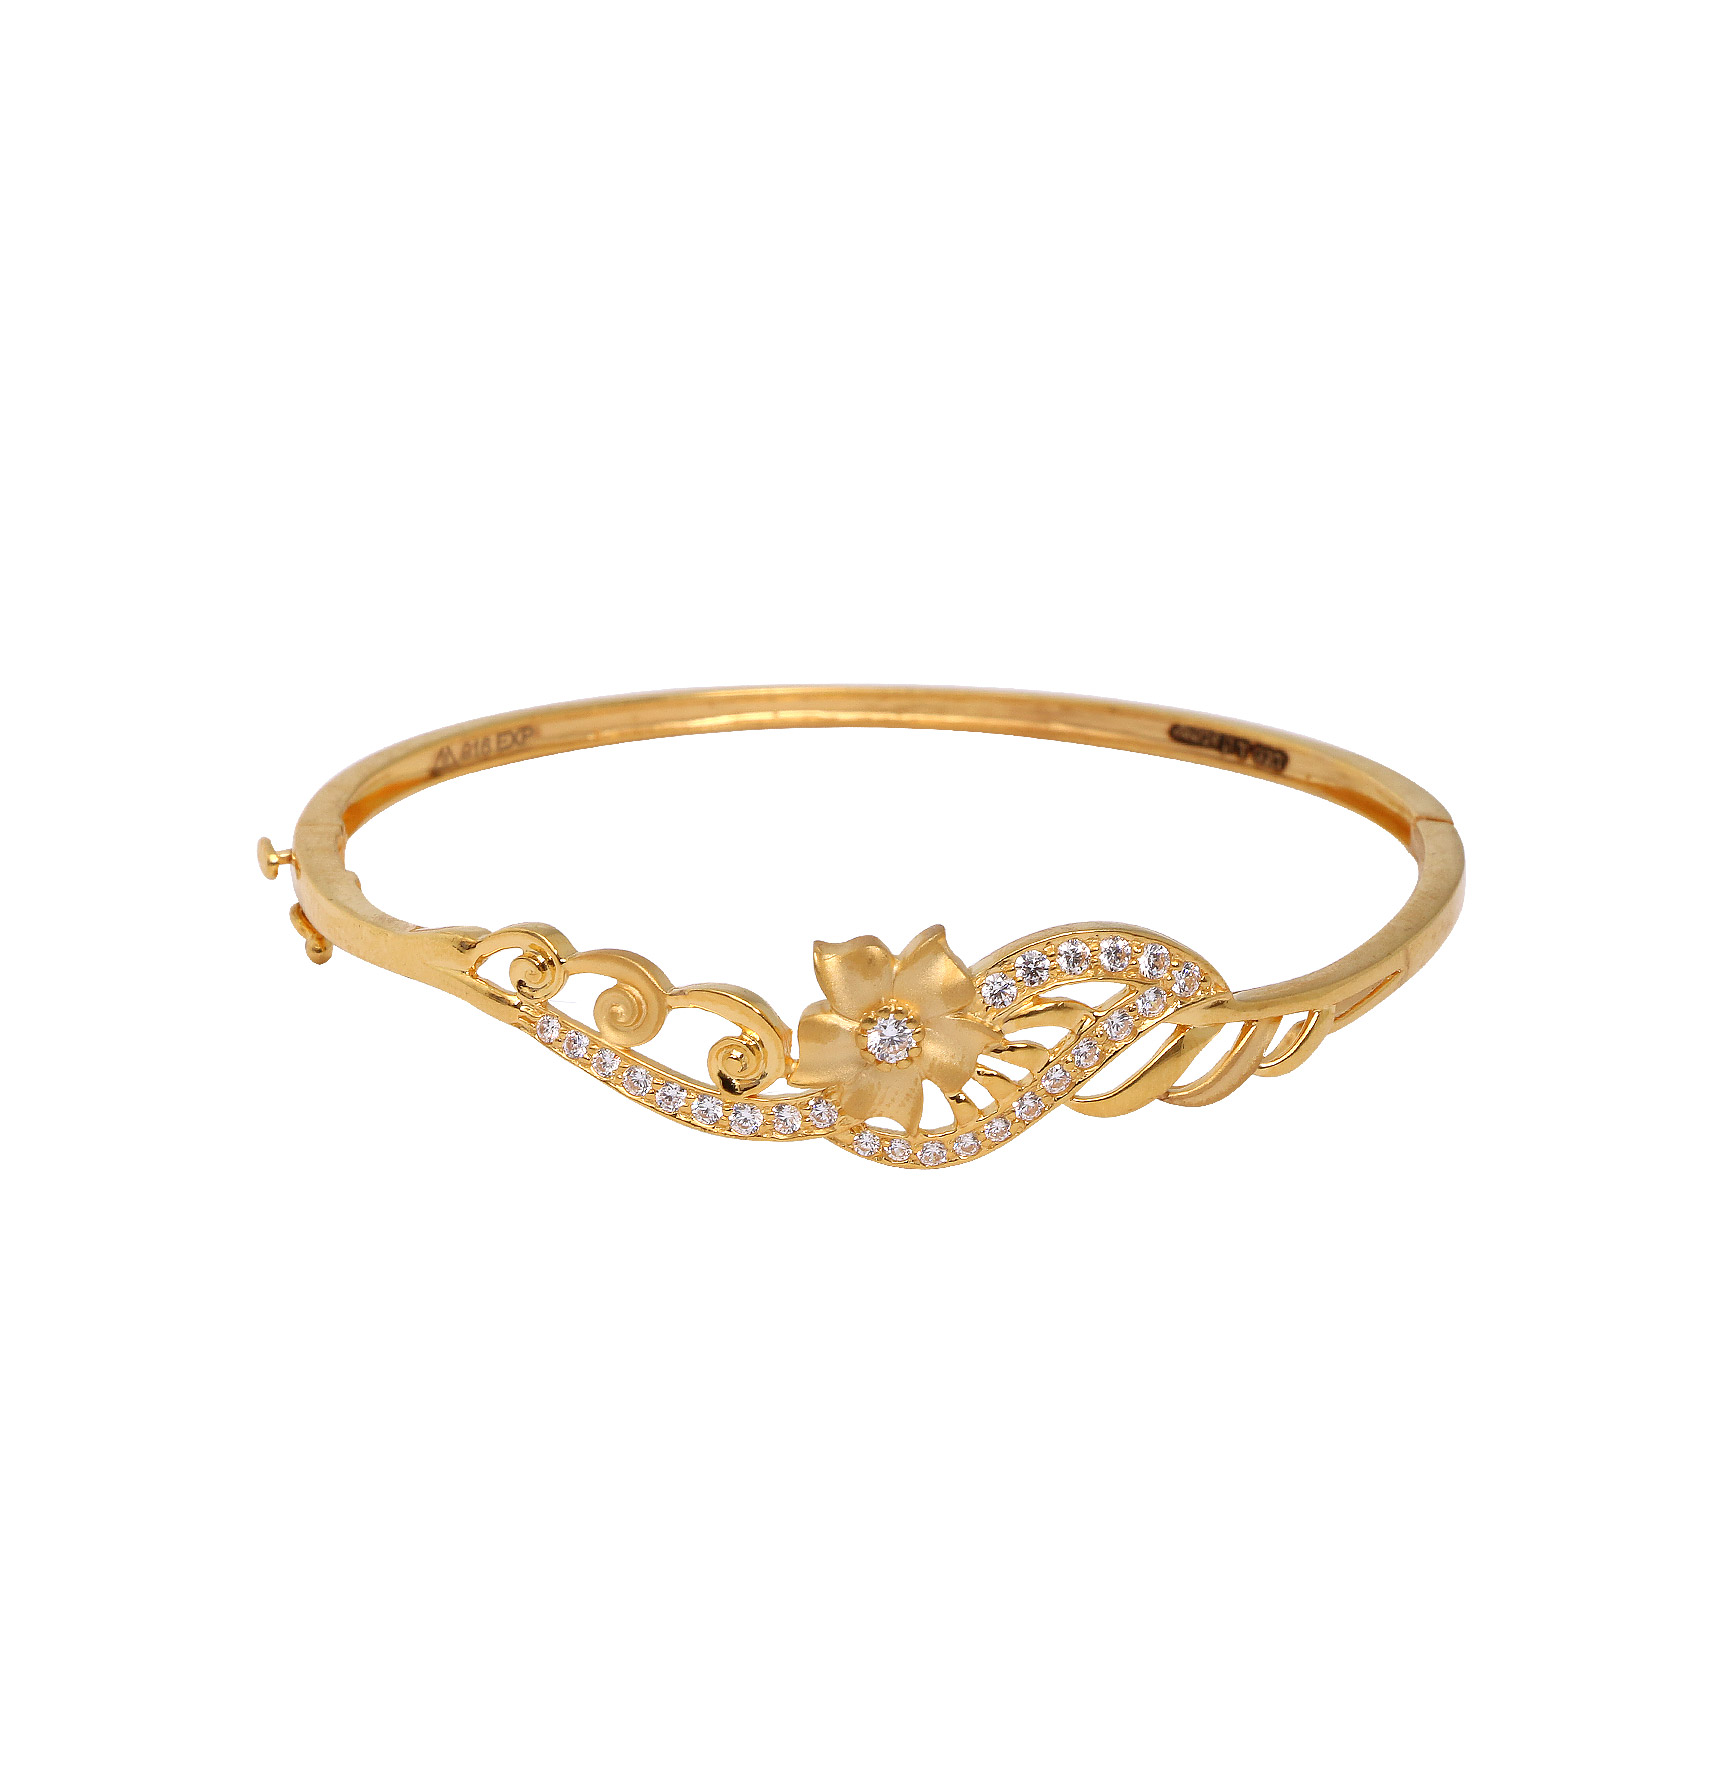 Amazing Grt Gold Bracelet Design Photos - Jewelry Collection Ideas ...